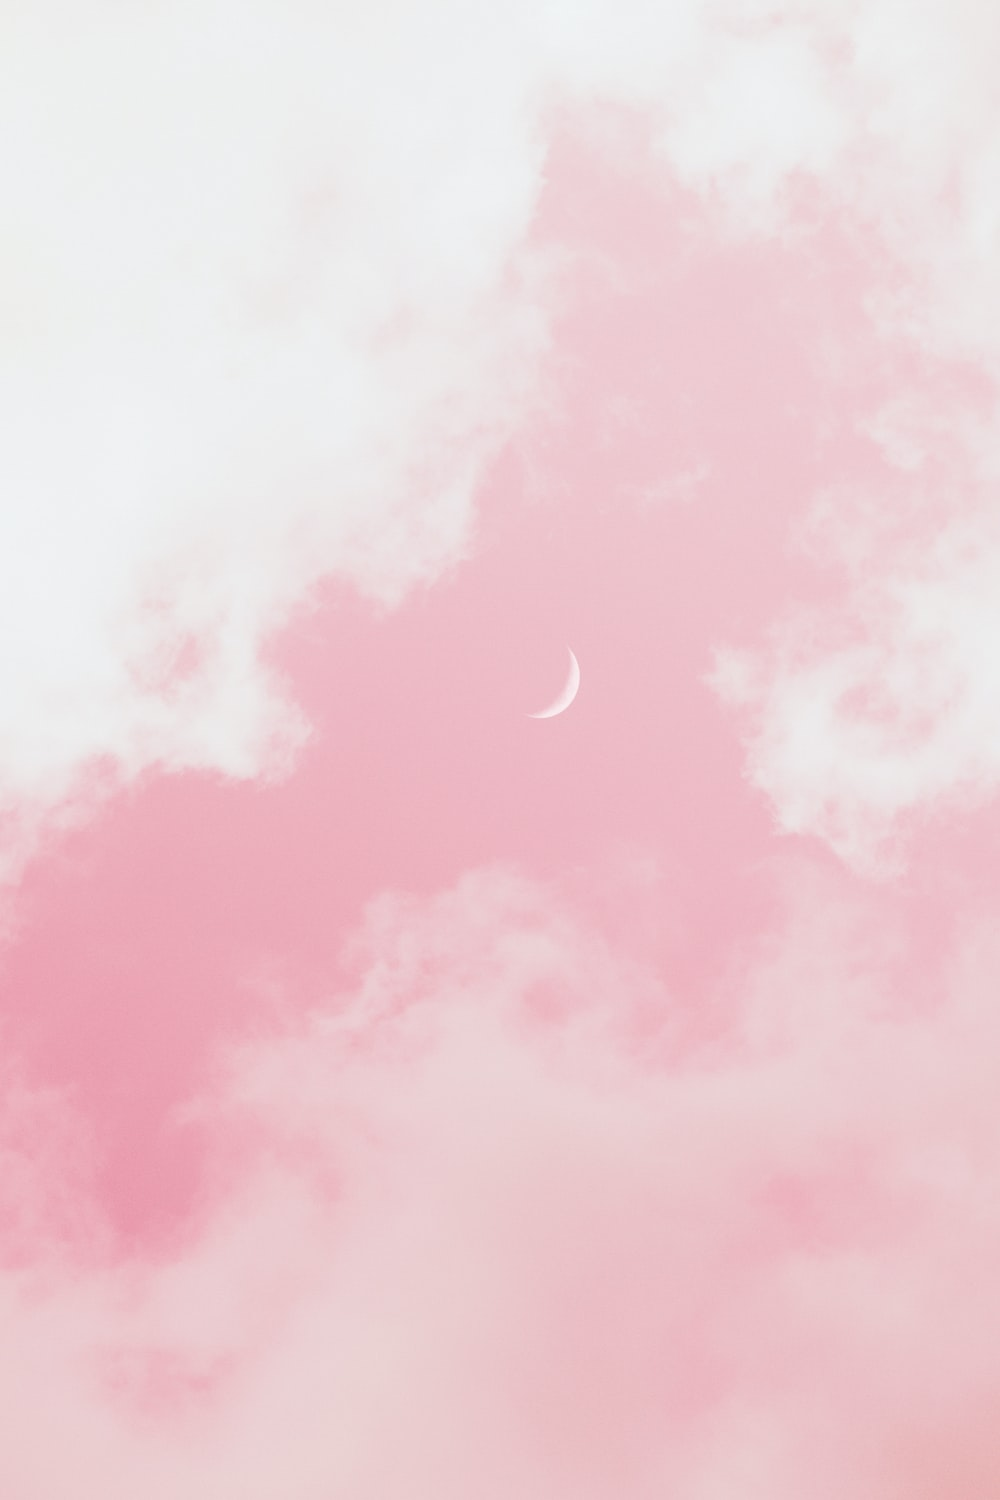 20+ Pink Aesthetic Pictures   Download Free Images on Unsplash